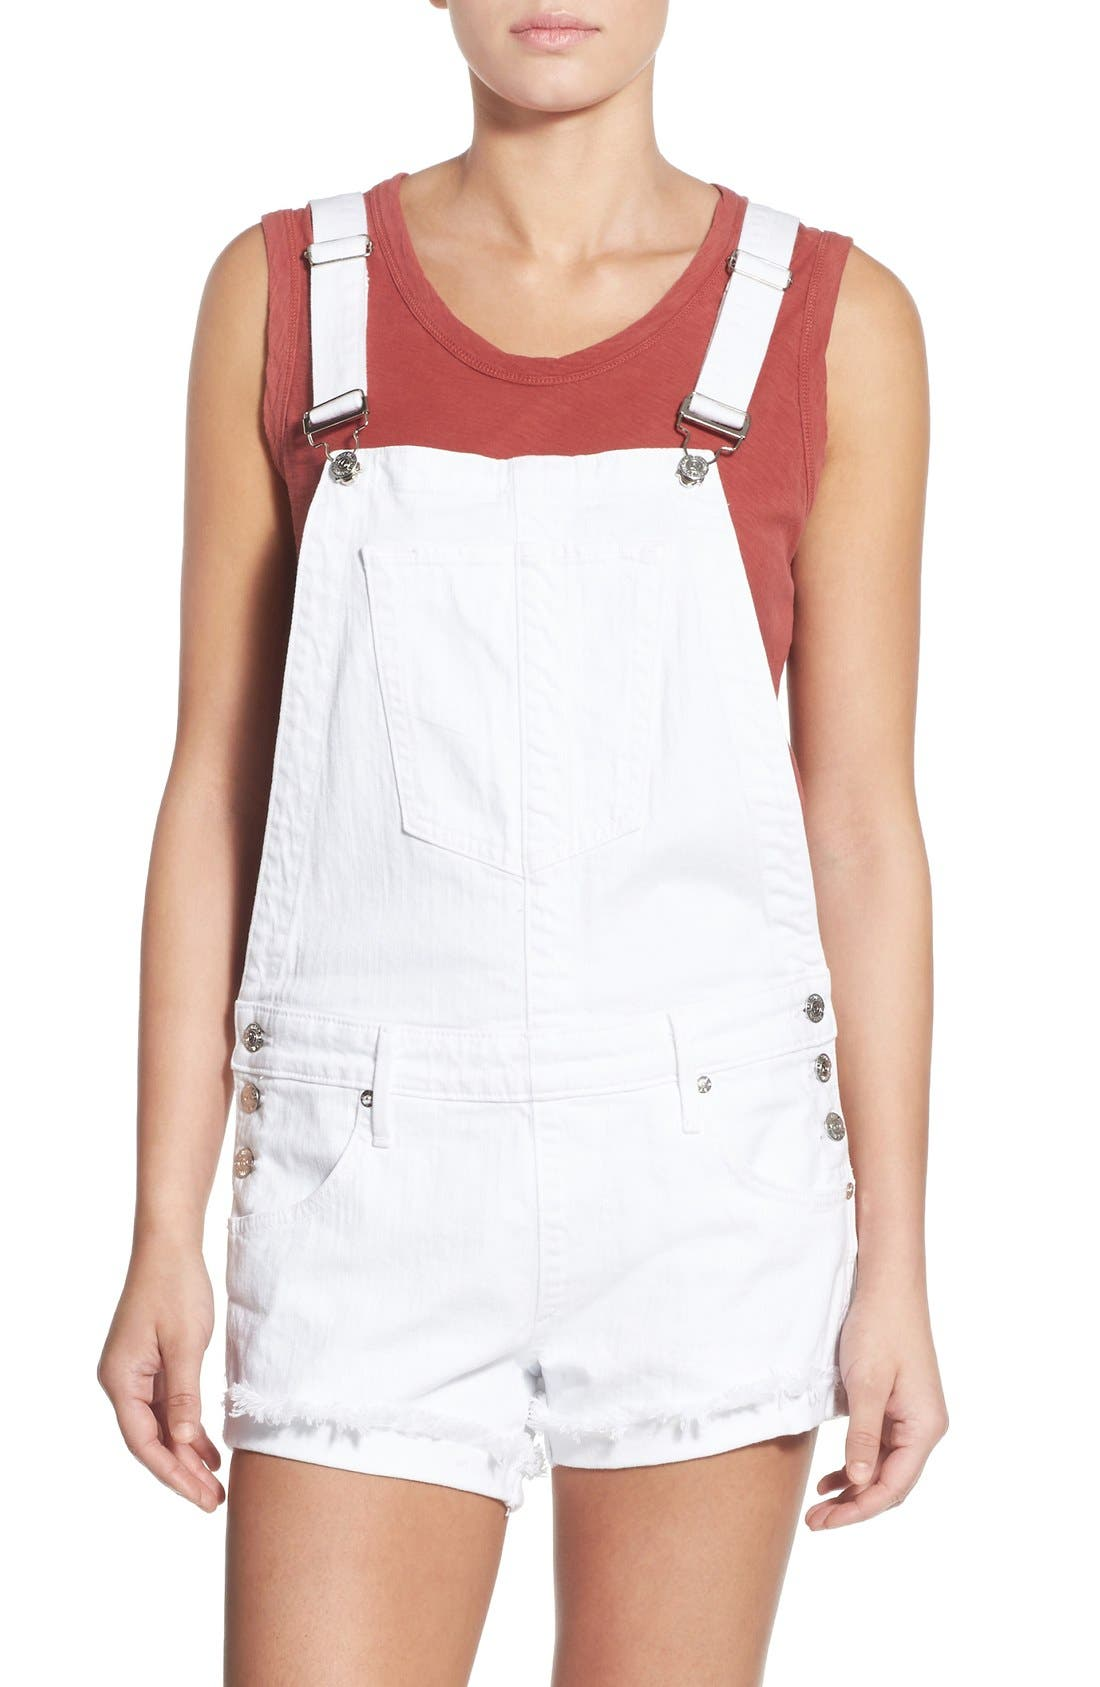 Alternate Image 1 Selected - True Religion Brand Jeans Denim Short Overalls (Optic White)